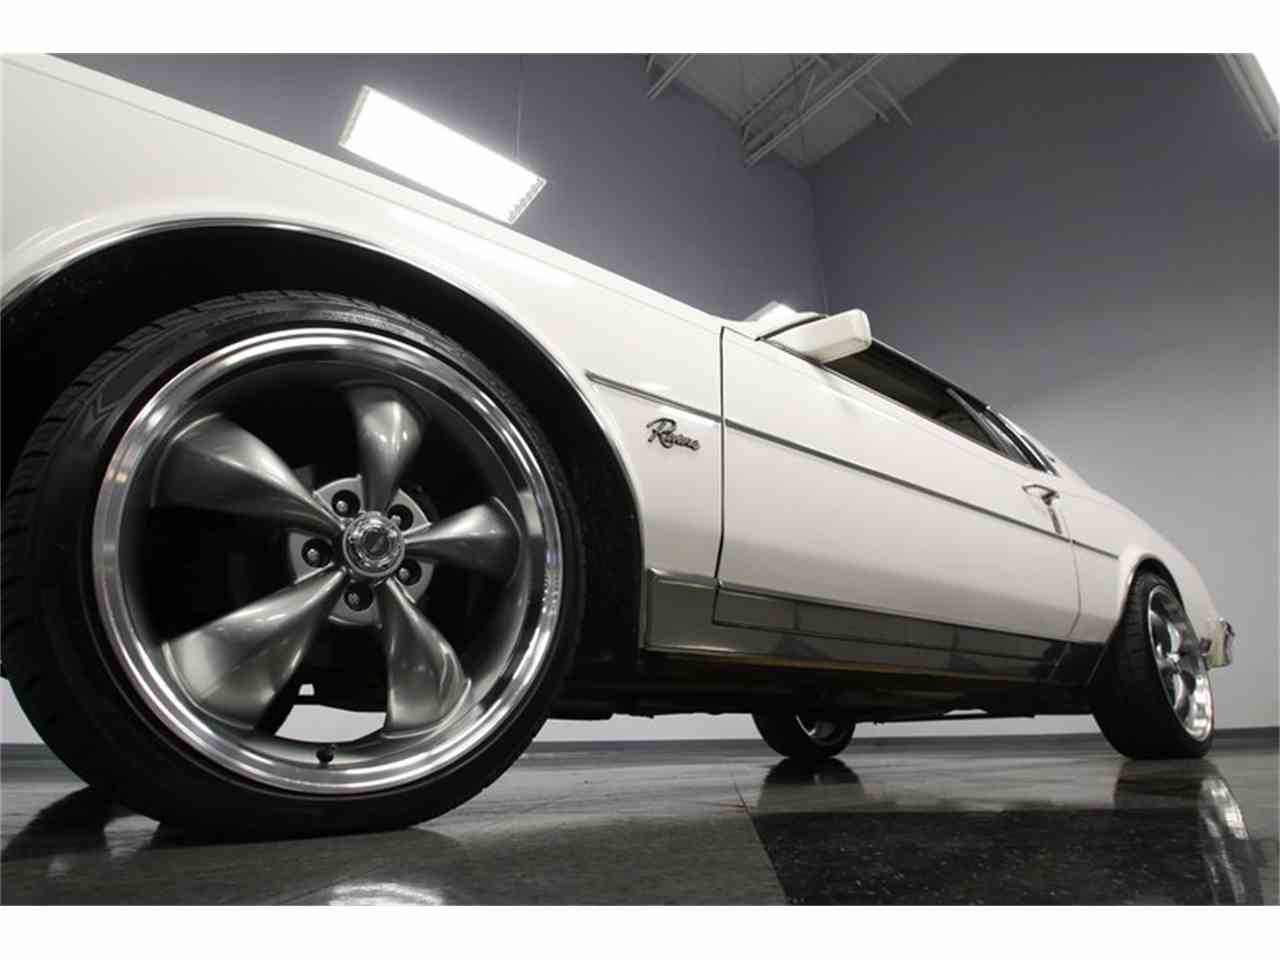 Large Picture of '85 Buick Riviera located in North Carolina - $8,995.00 Offered by Streetside Classics - Charlotte - MEQO